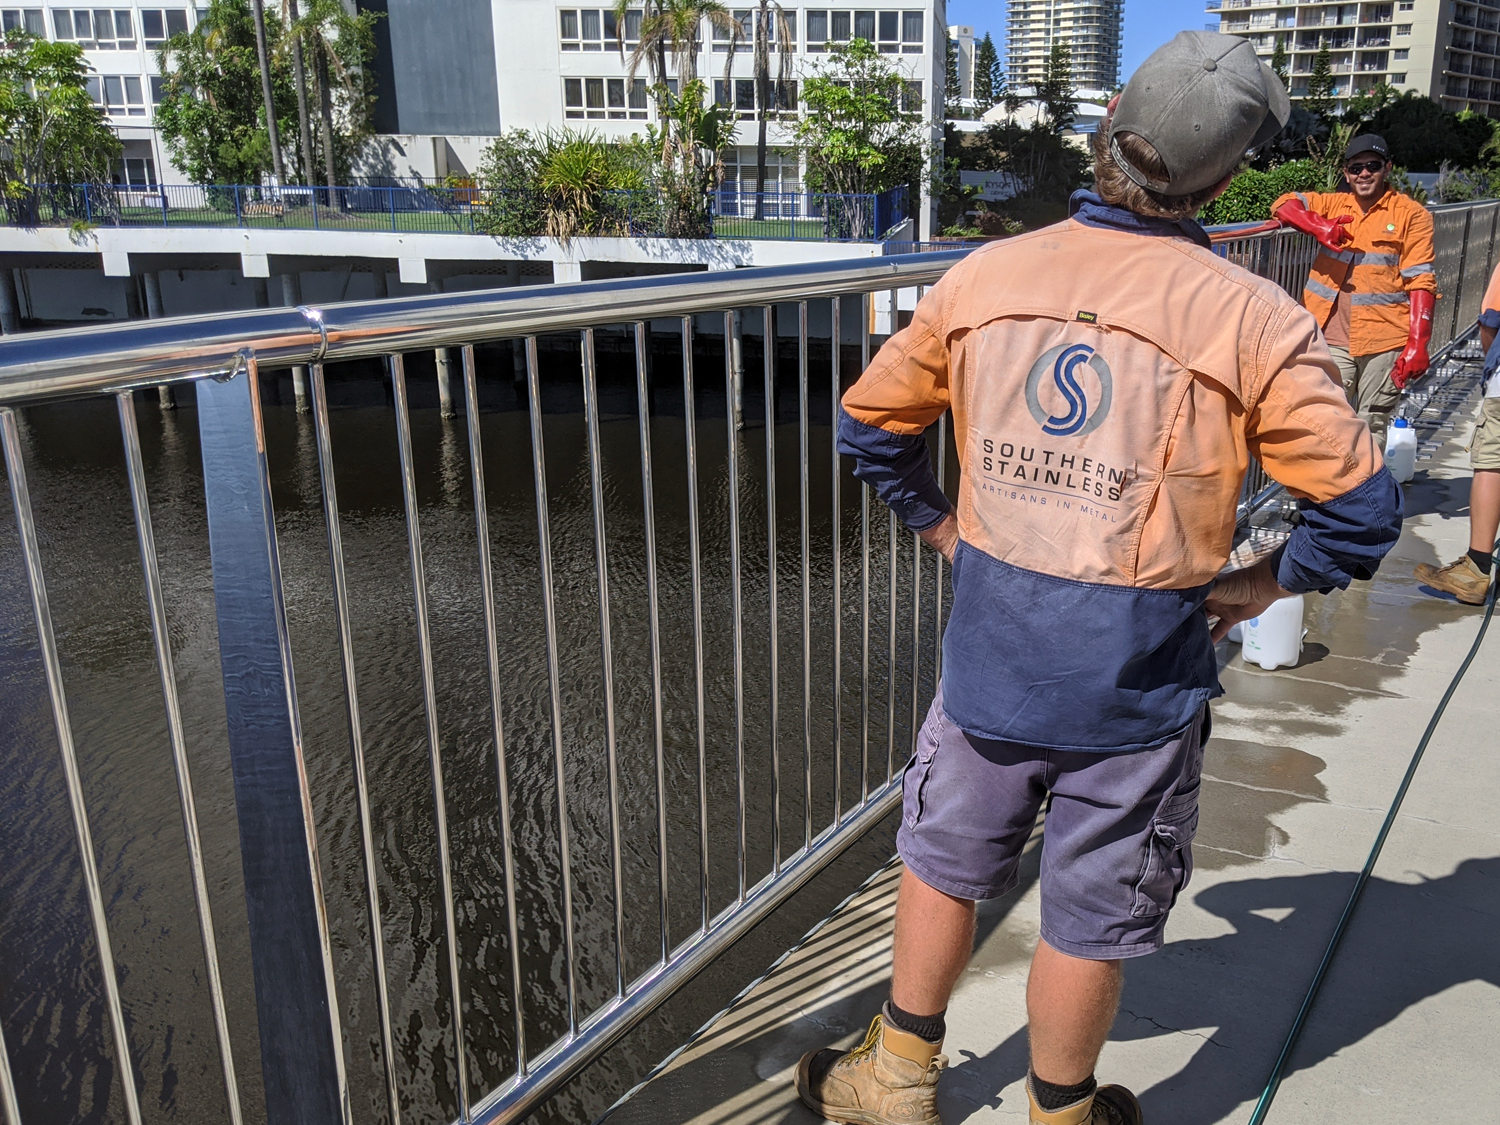 Cleaning outdoor stainless, Thomas Drive Bridge Surfers Paradise QLD